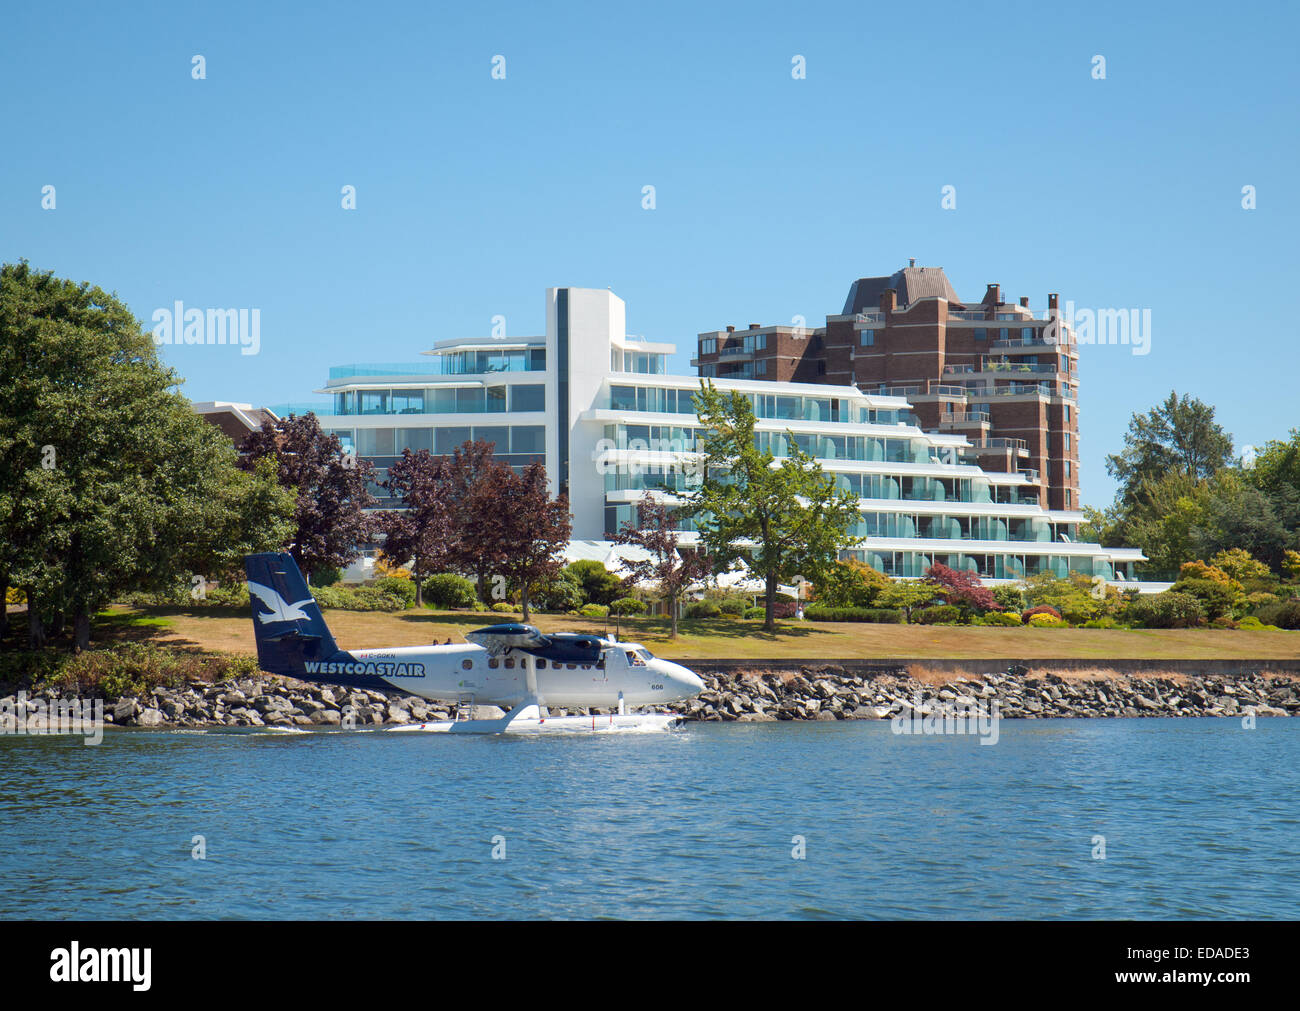 A Harbour Air DHC-6 DeHavilland Twin Otter seaplane in front of the Inn at Laurel Point in Victoria, British Columbia, - Stock Image